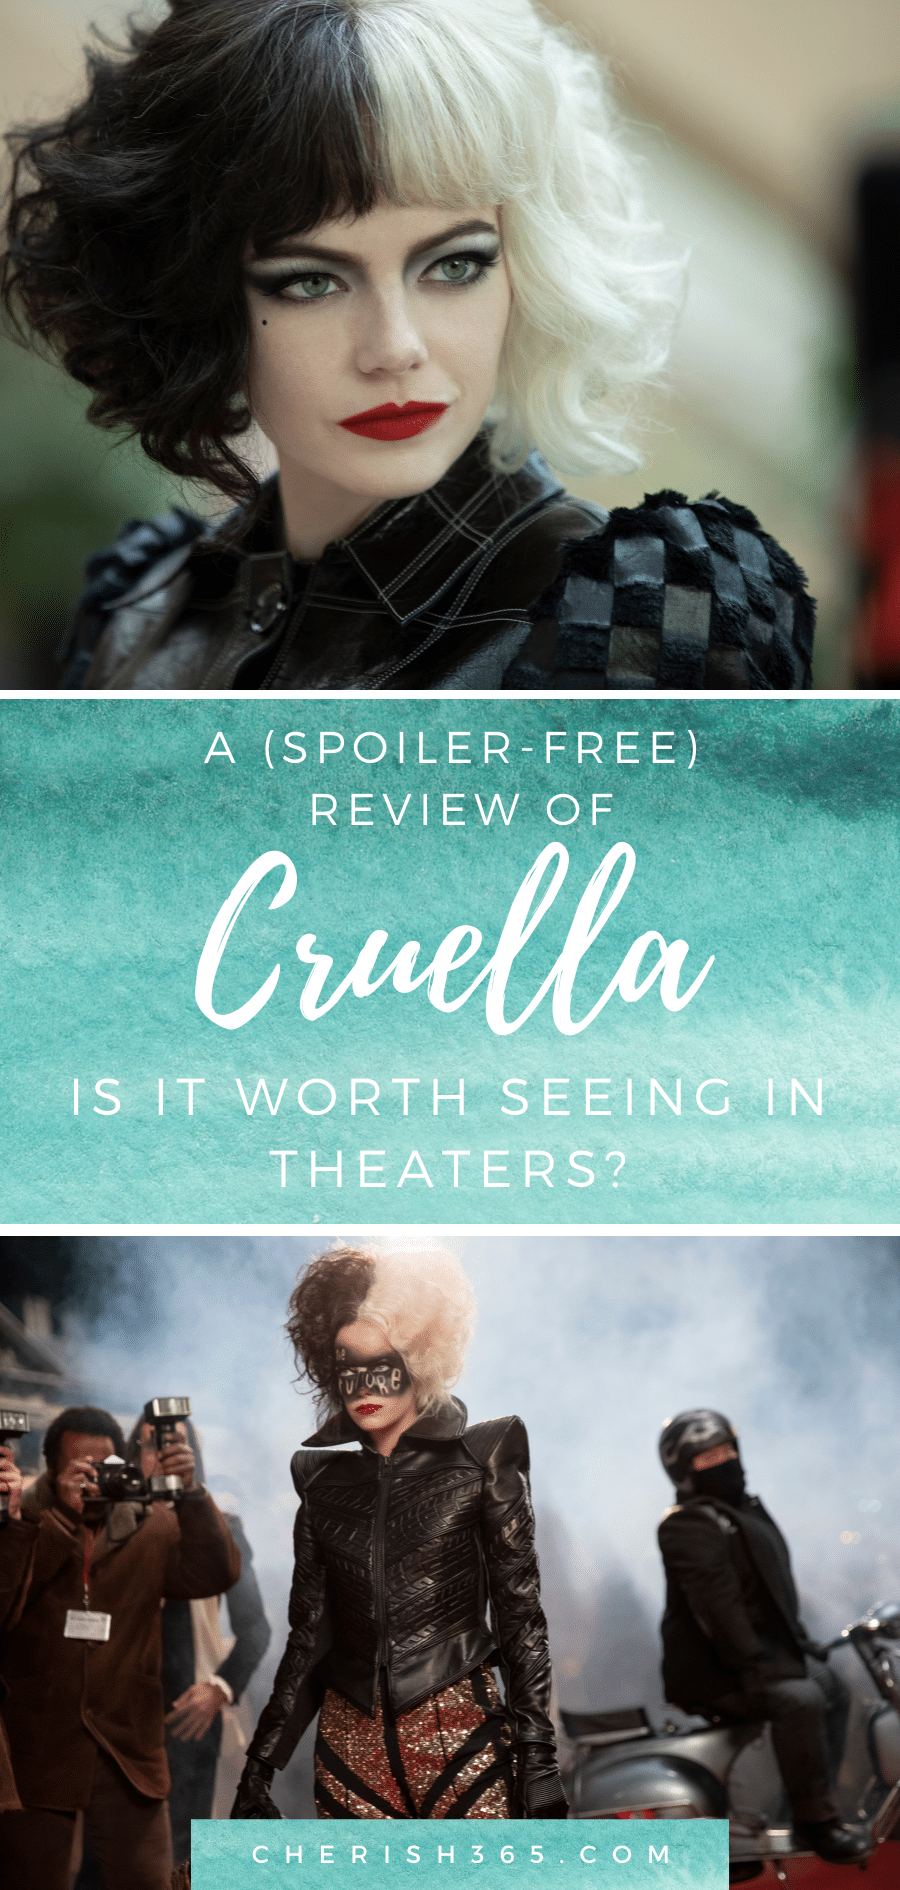 Is Cruella Scary for Kids? An Honest Movie Review With my 8 and 10 Year Old